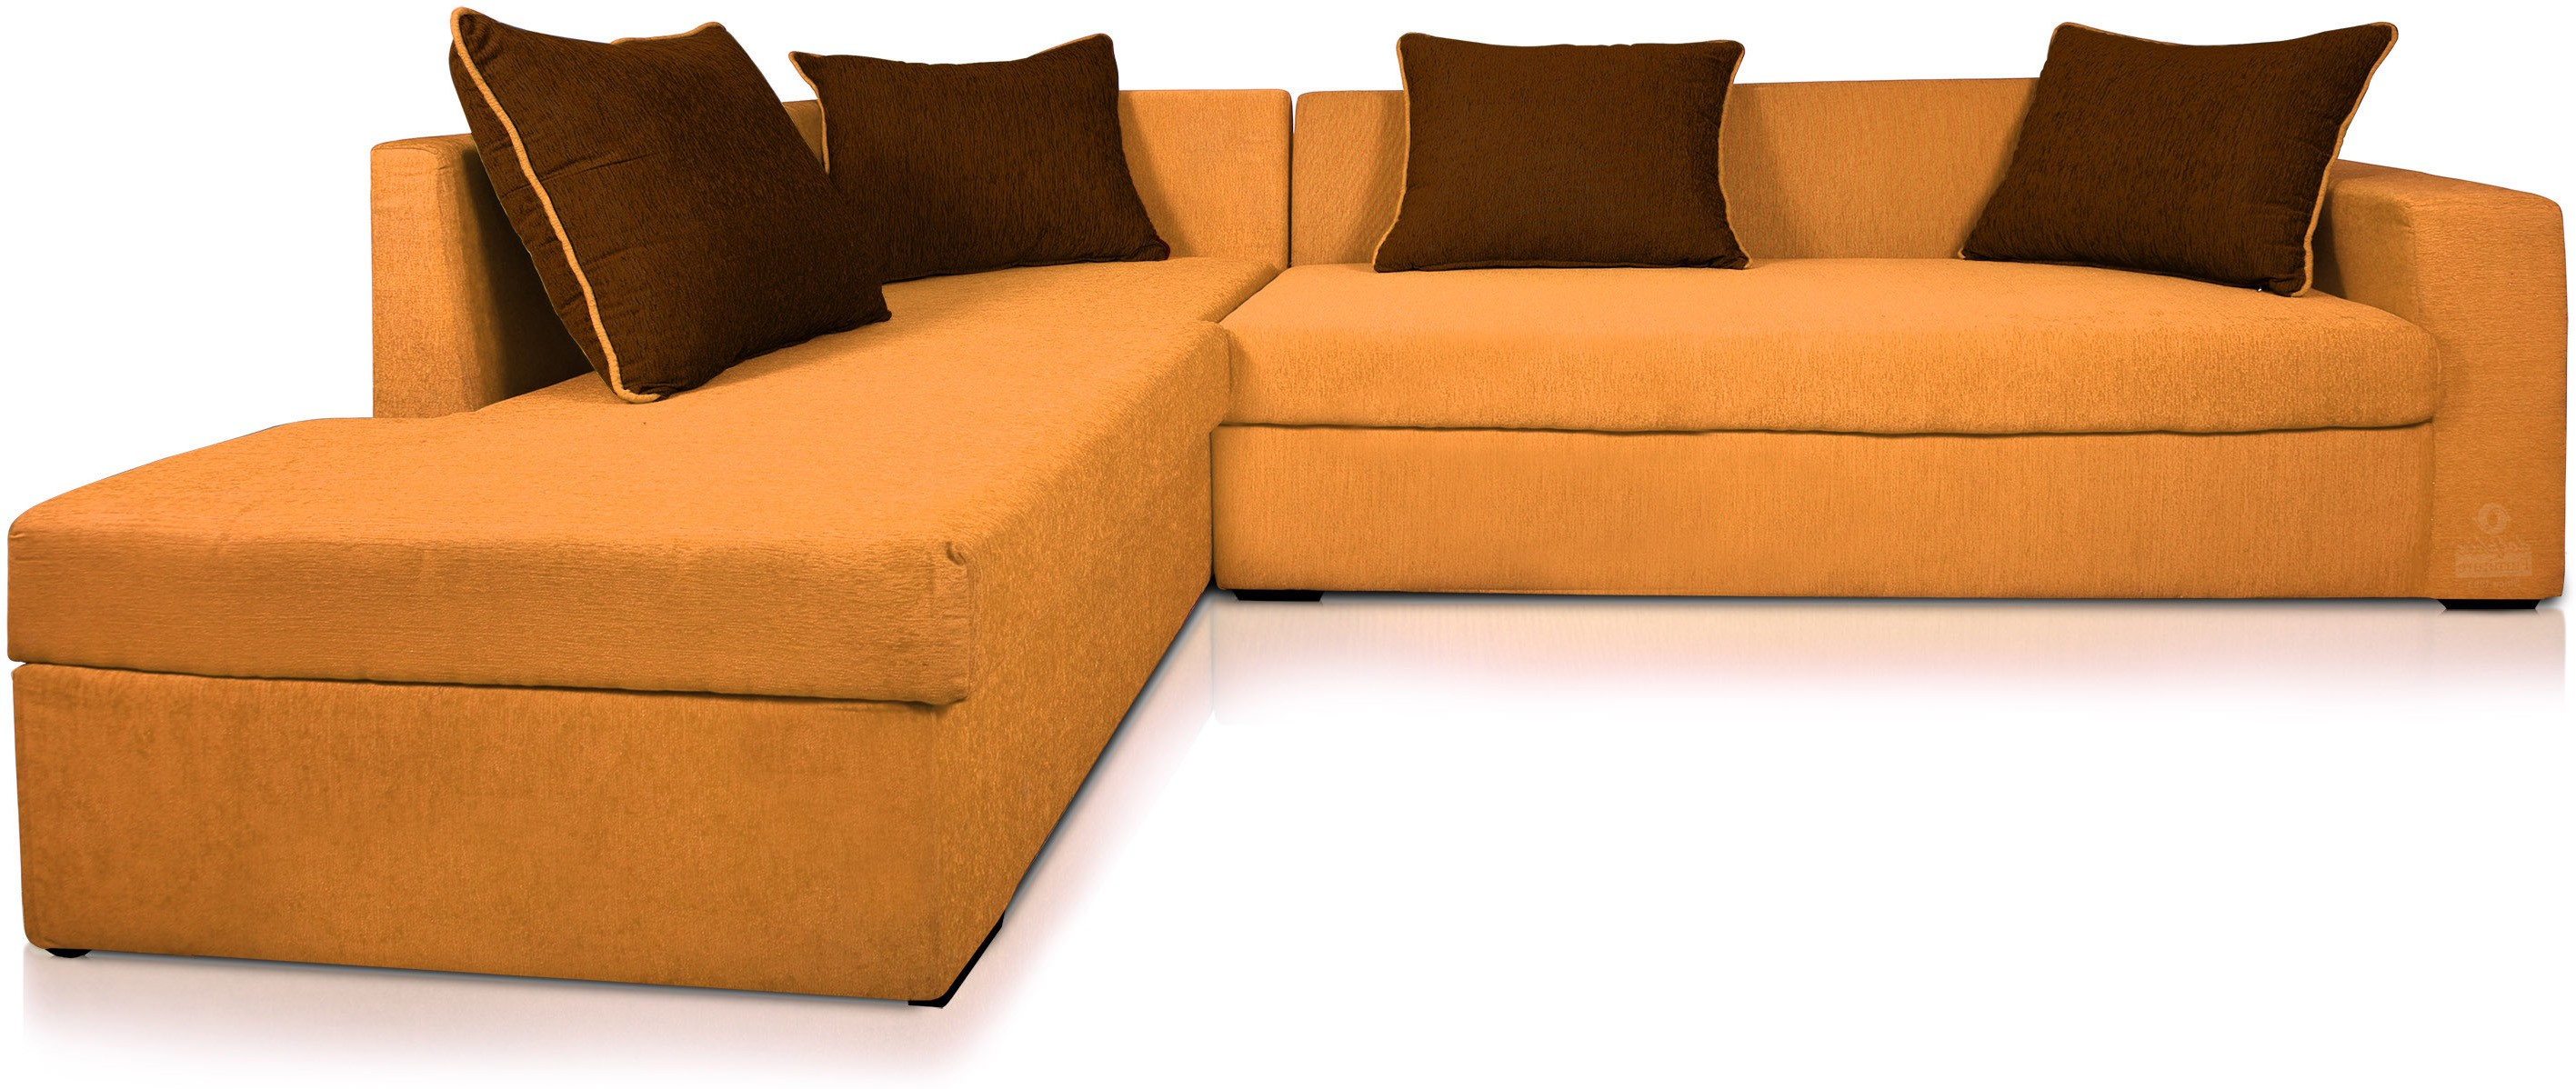 View Dolphin Fabric 3 + 2 Orange-Brown Sofa Set(Configuration - L-shaped) Furniture (Dolphin)